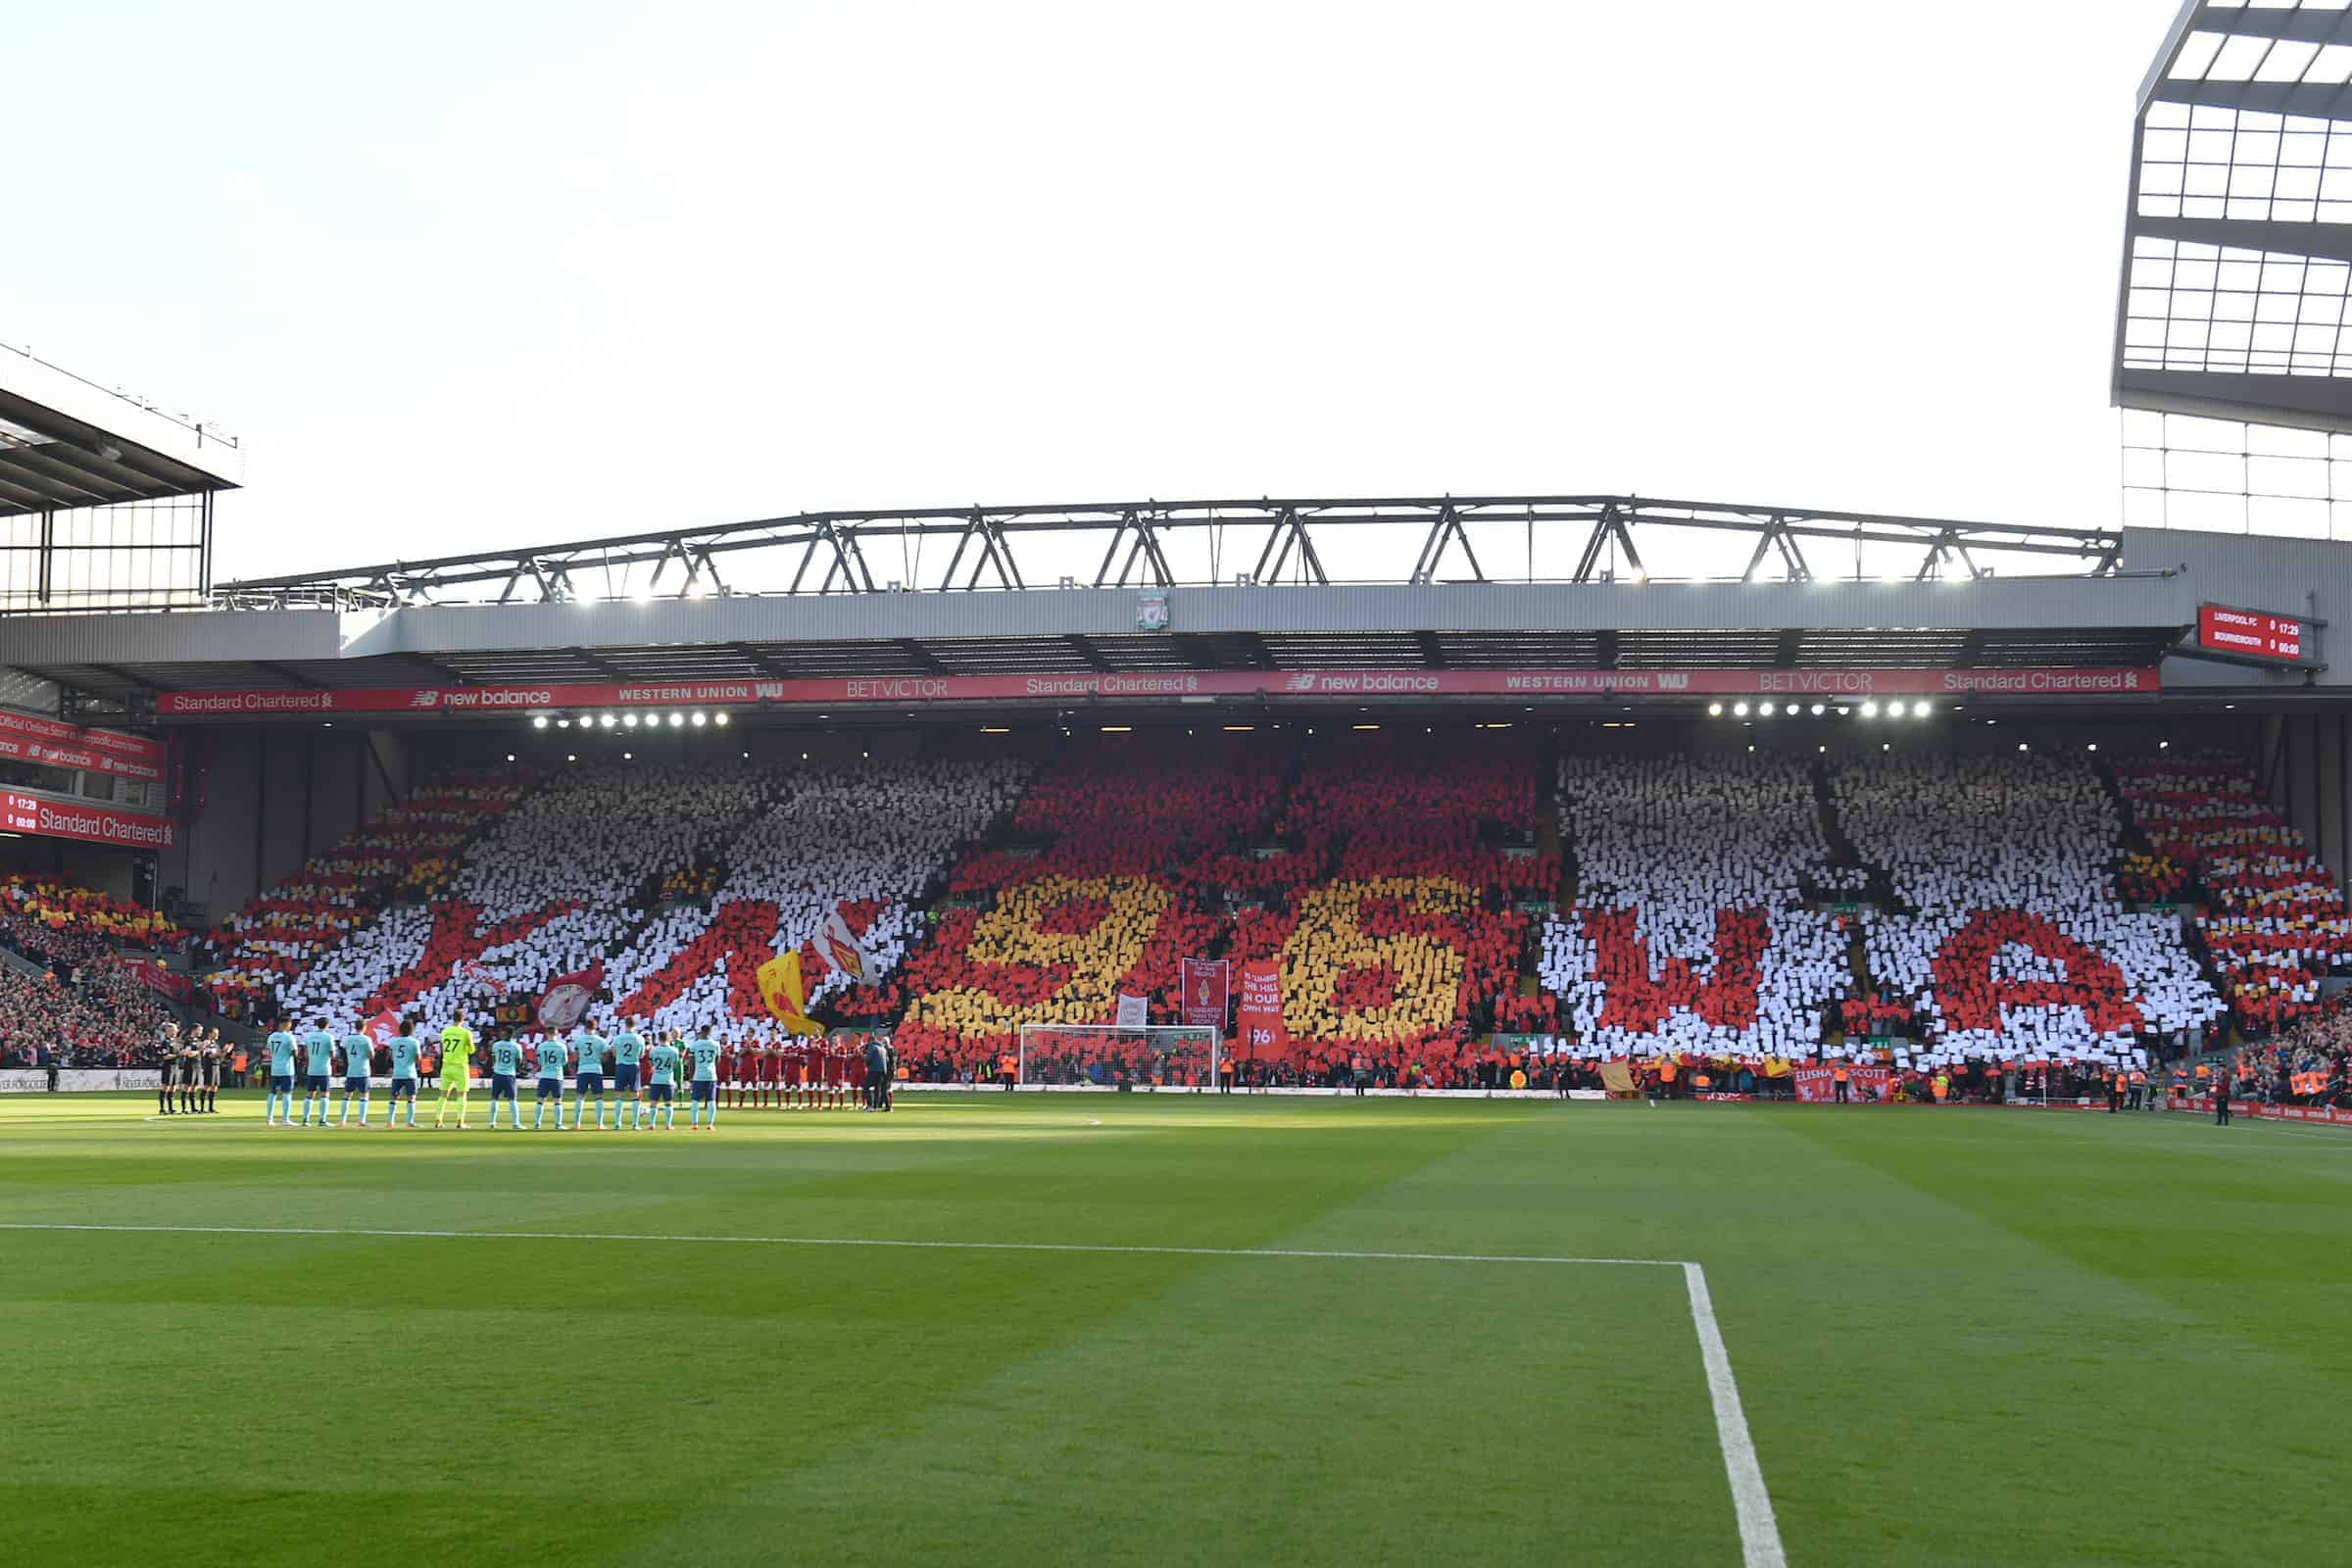 A minute's applause is held to mark the 29th anniversary of the Hillsborough tragedy before the Premier League match at Anfield, Liverpool. PRESS ASSOCIATION Photo. Picture date: Saturday April 14, 2018.. Photo: Anthony Devlin/PA Wire.